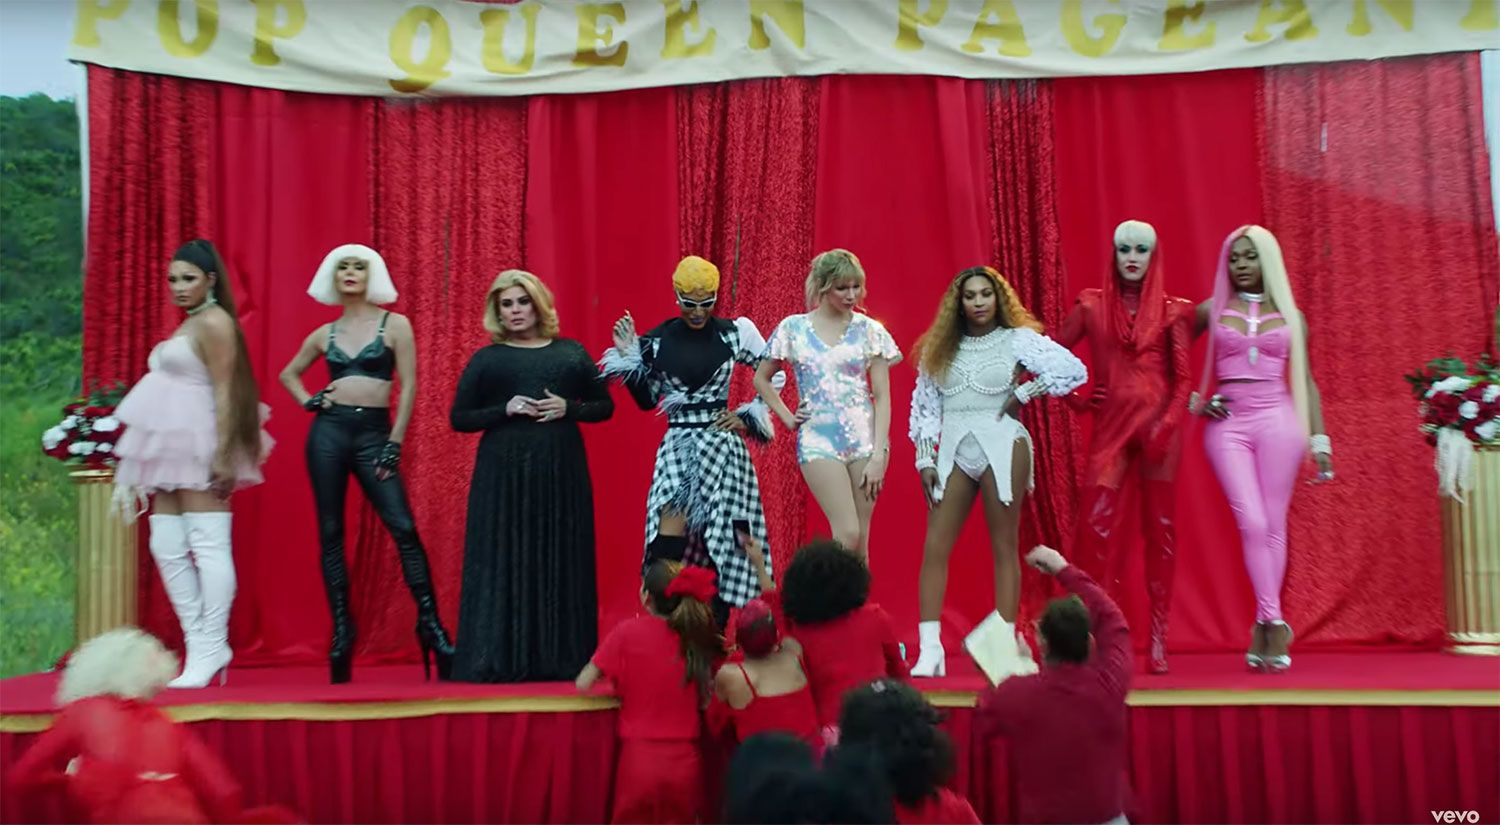 Taylor Swift's 'You Need to Calm Down' Music Video Easter